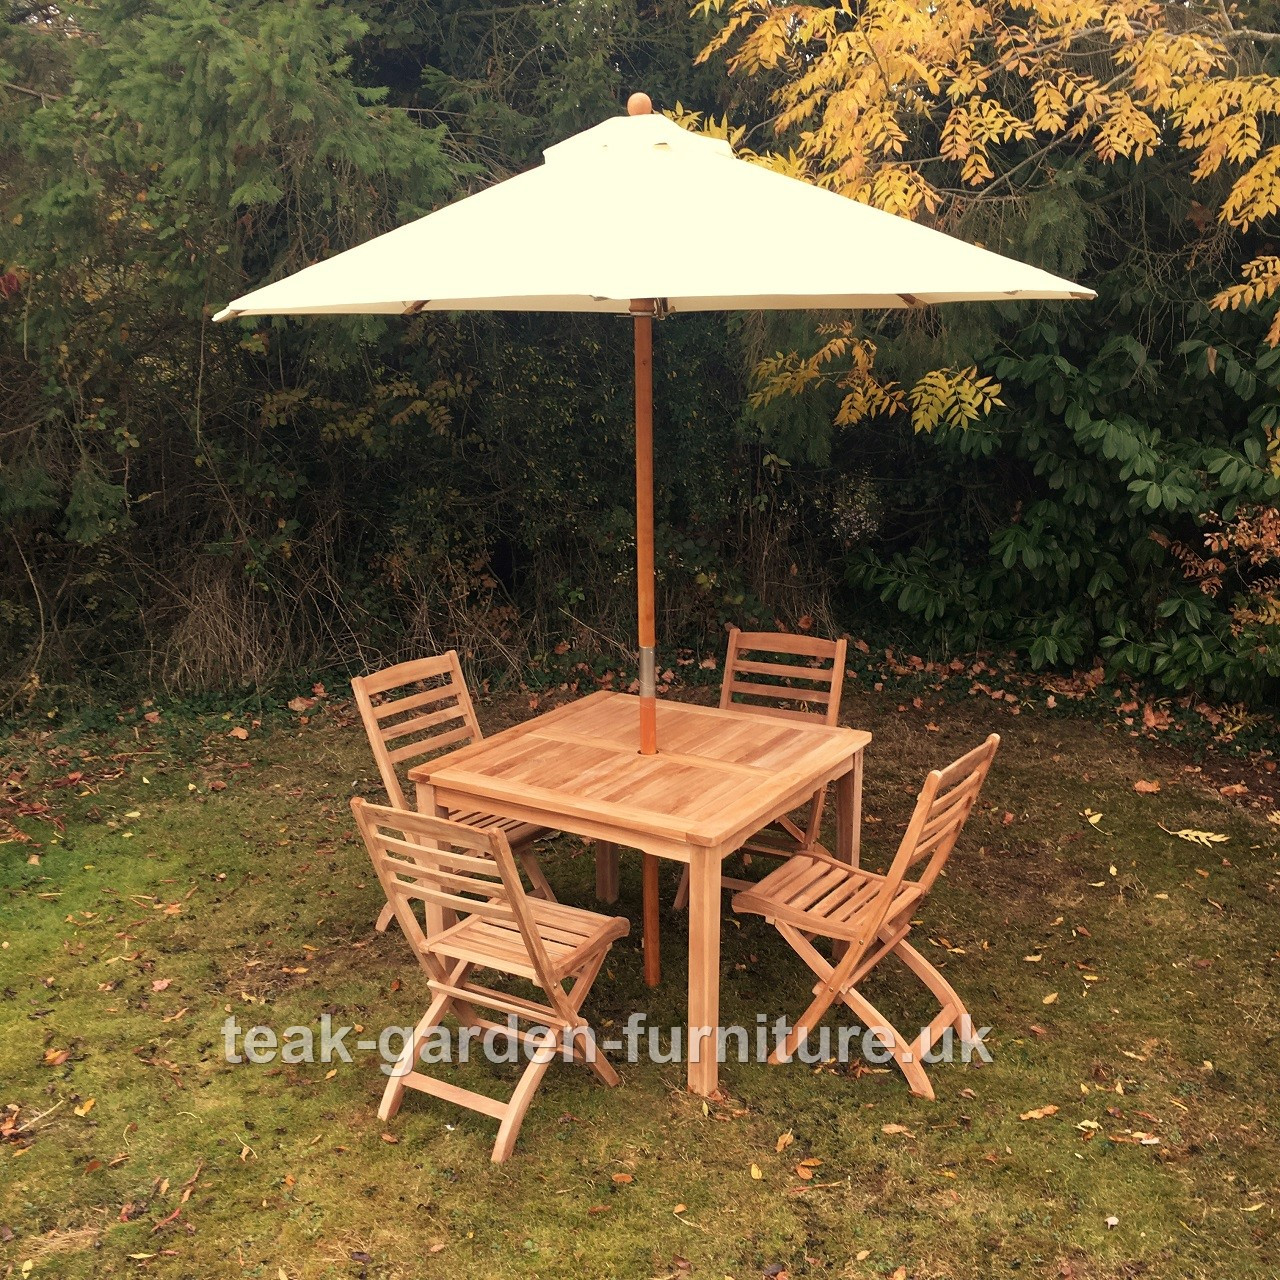 Side Table 100 Cm.Square Fixed Table 100cm X 100cm With 4 Folding Side Chairs And 2 5m Parasol